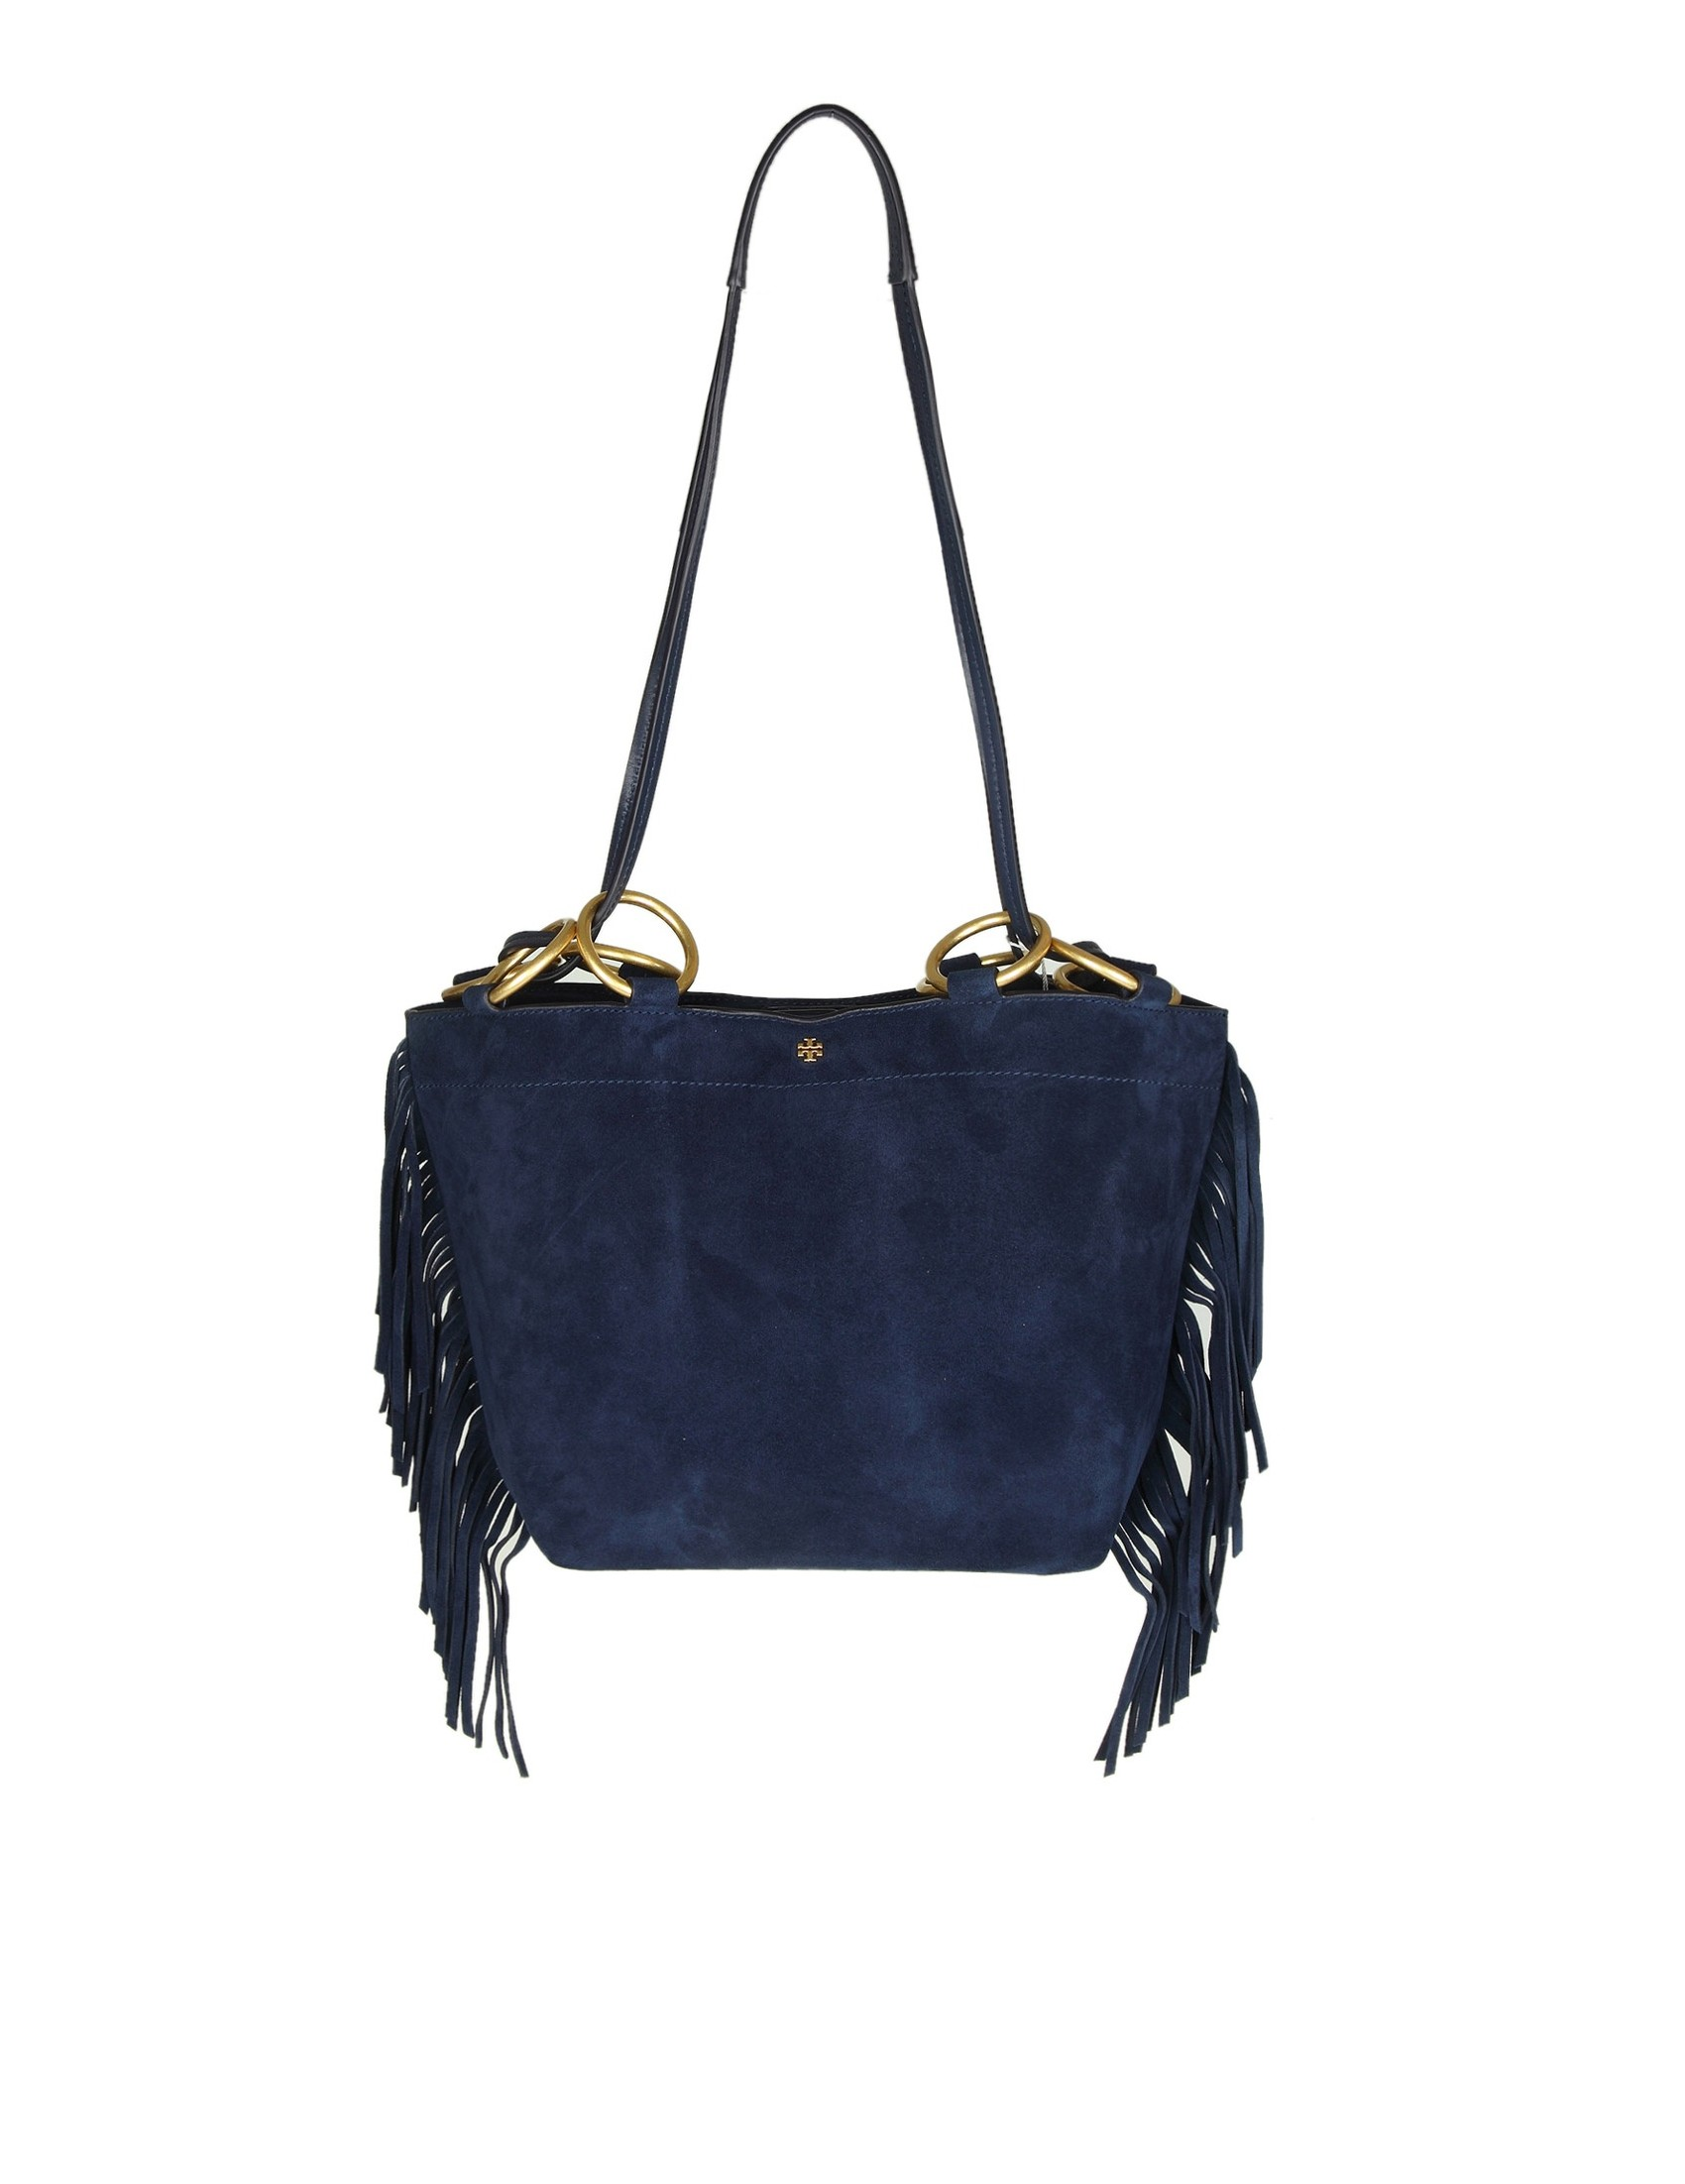 Tory Burch Farrah Fringe Small Tote Shoulder Bag In Suede